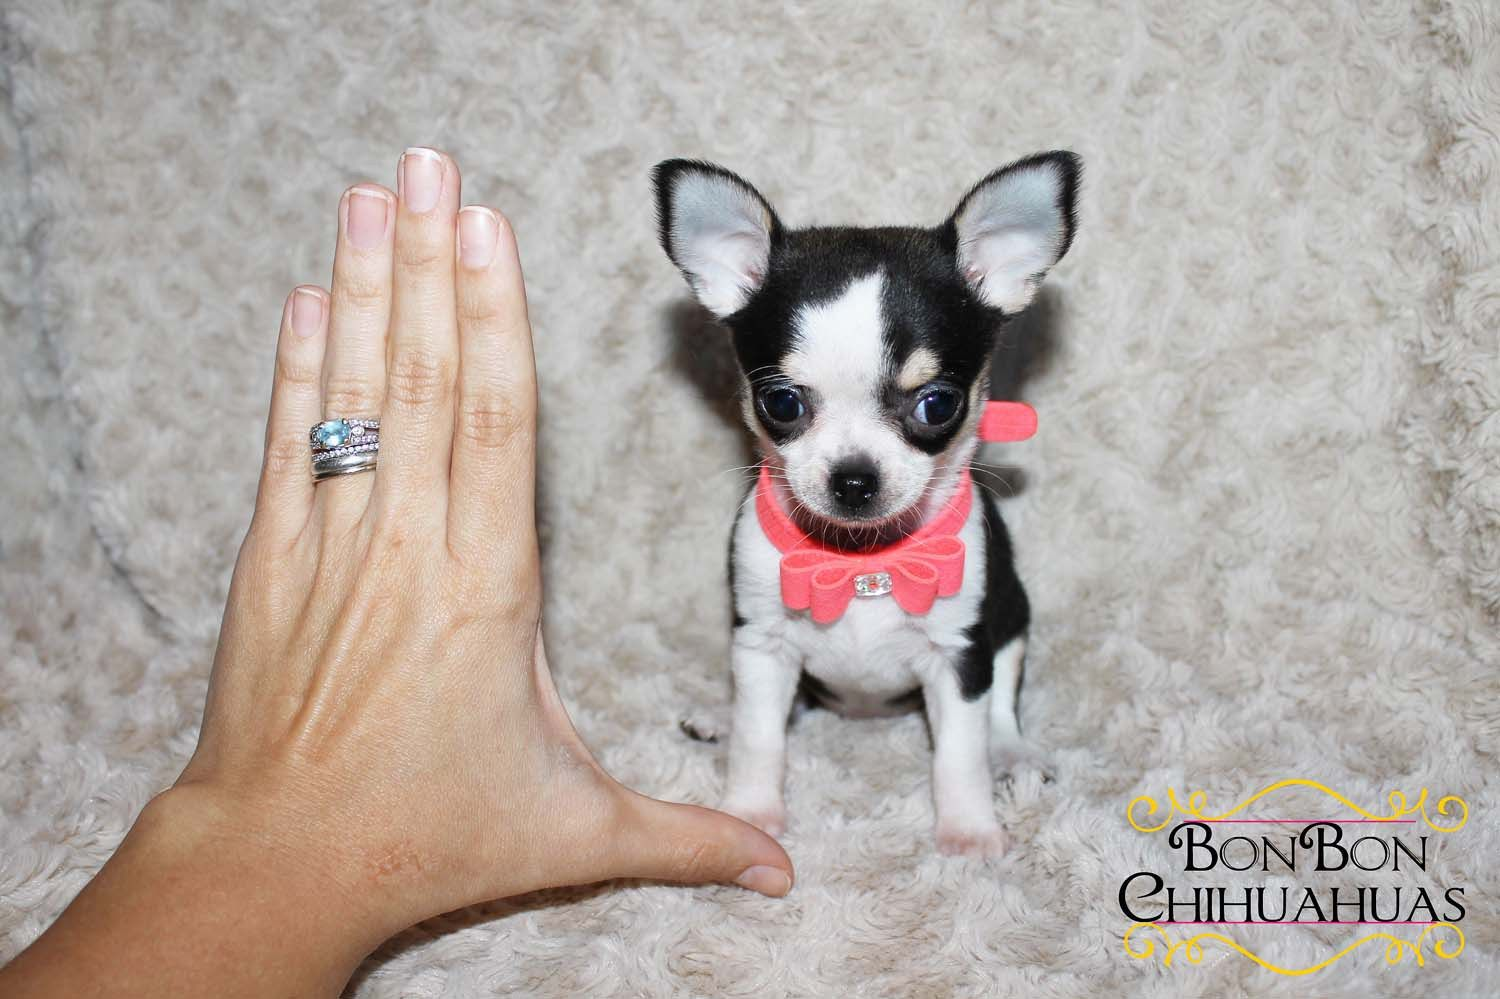 Chihuahua Dog Breeder Subs 55452 In Tracy California Usa On